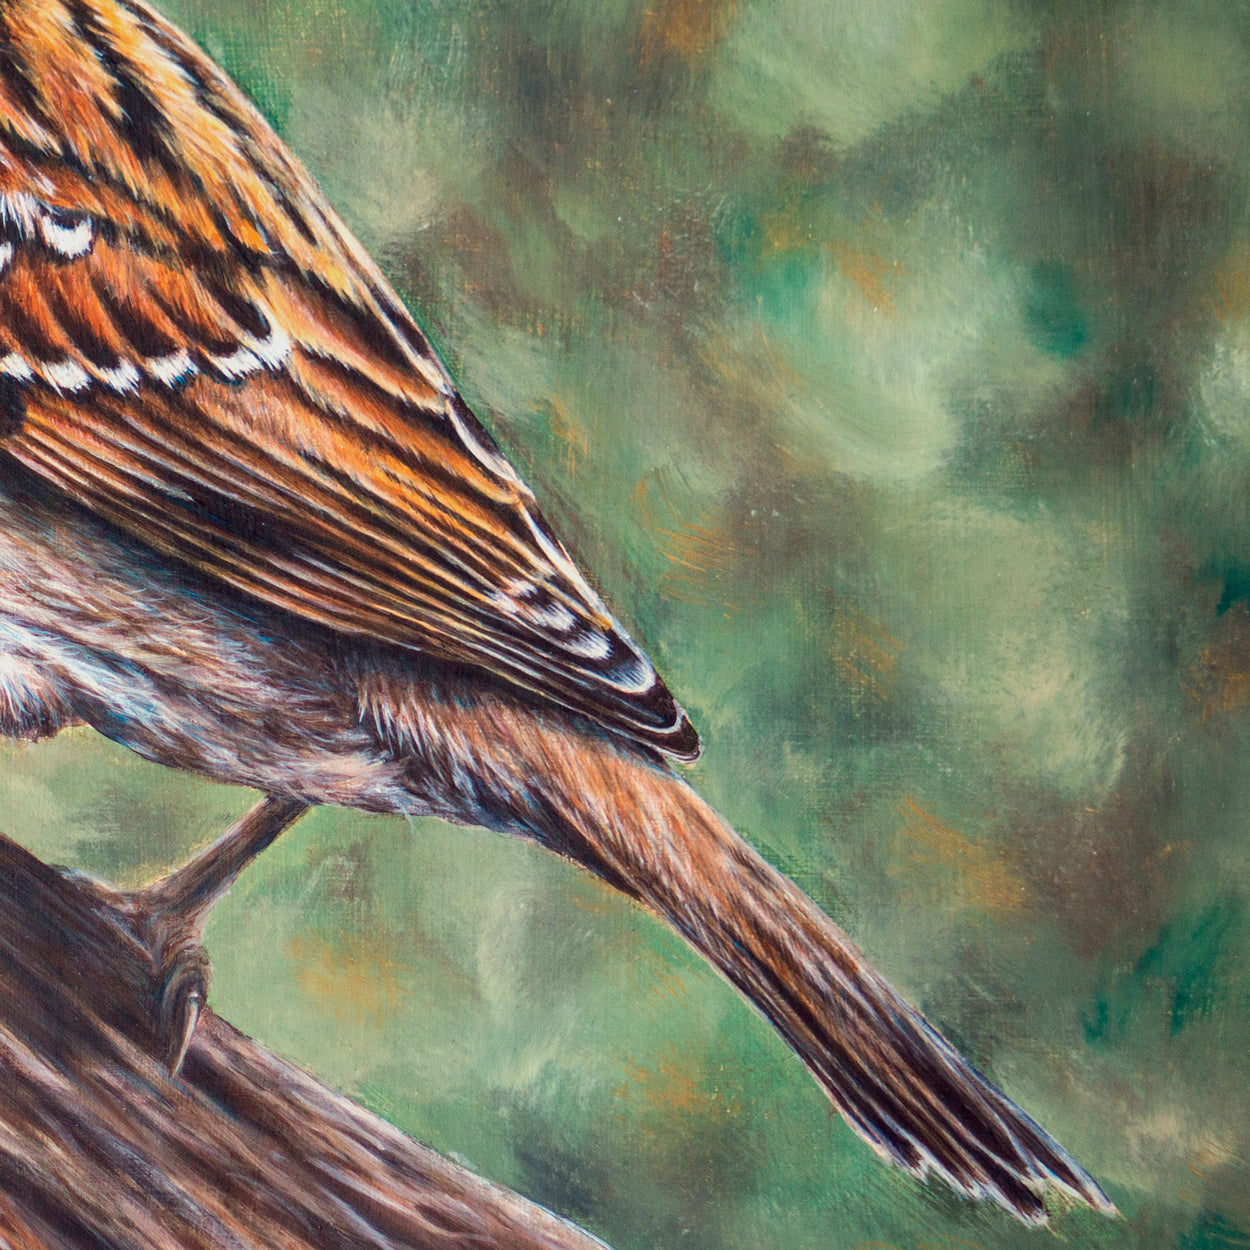 Tree Sparrow Painting Close-up 3 - The Thriving Wild